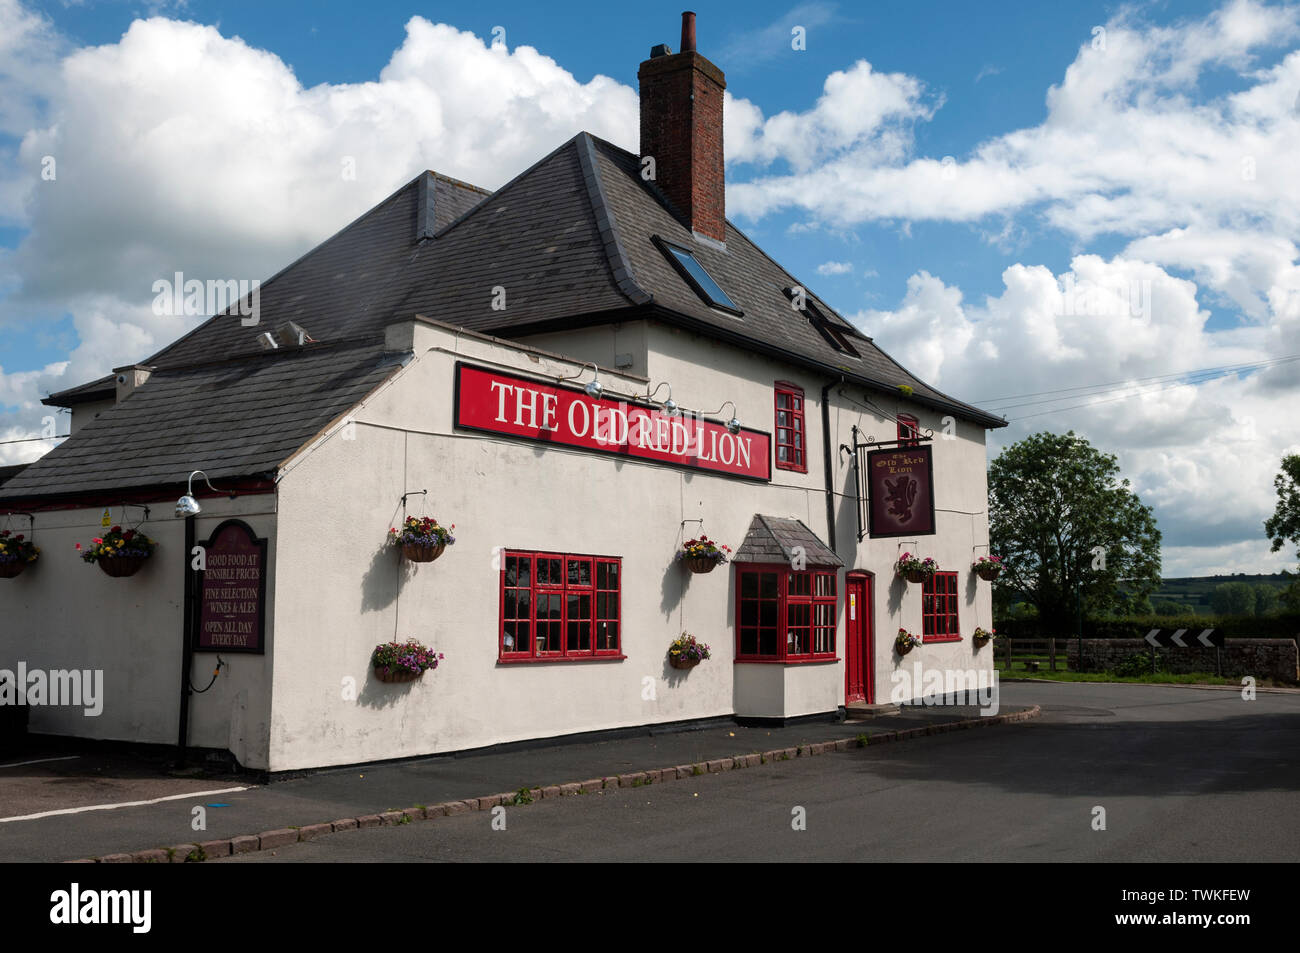 The Old Red Lion pub, Welham, Leicestershire, England, UK - Stock Image